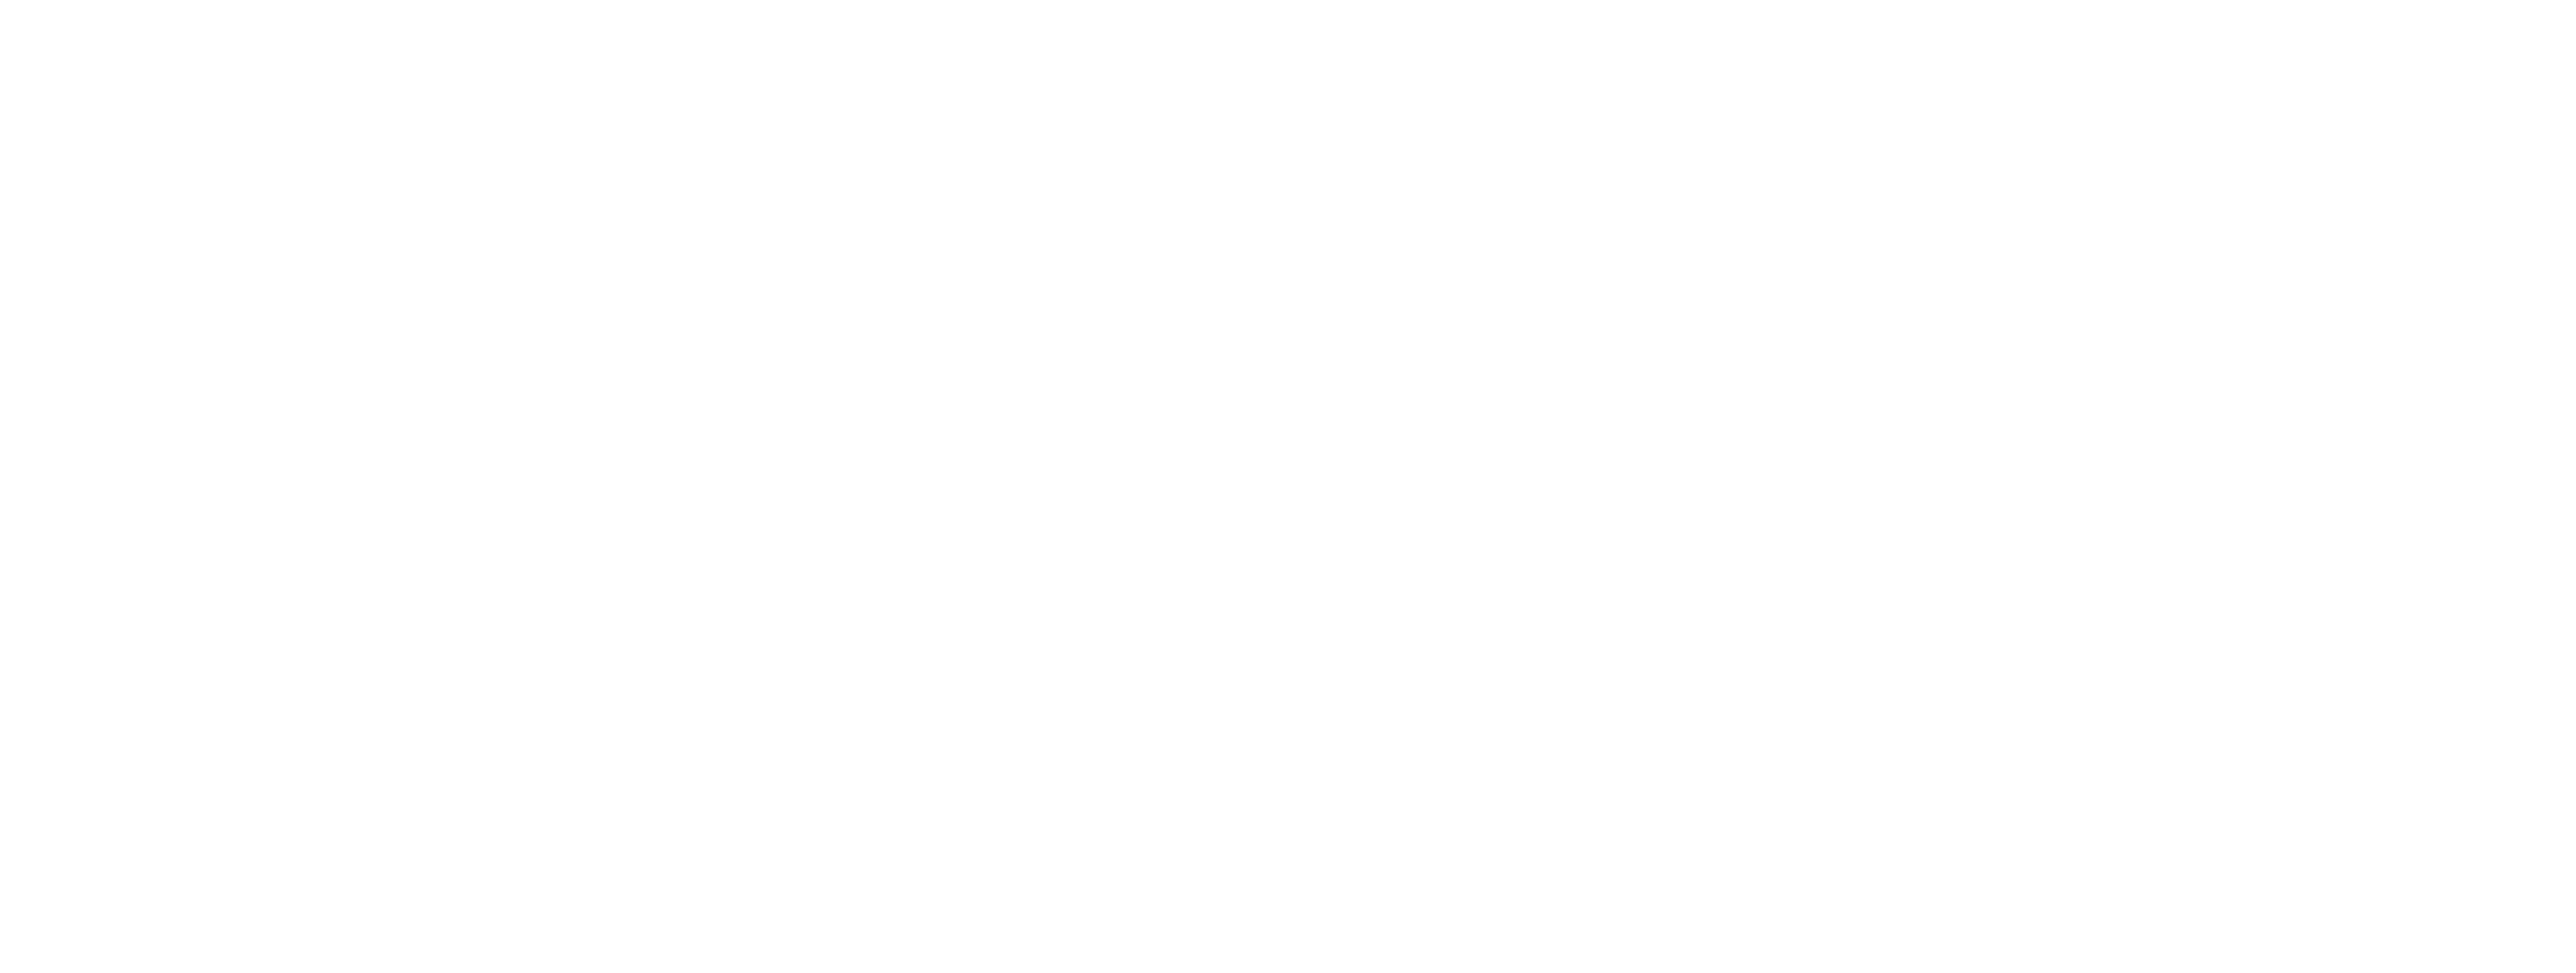 Innovate Elevate Youth Conference